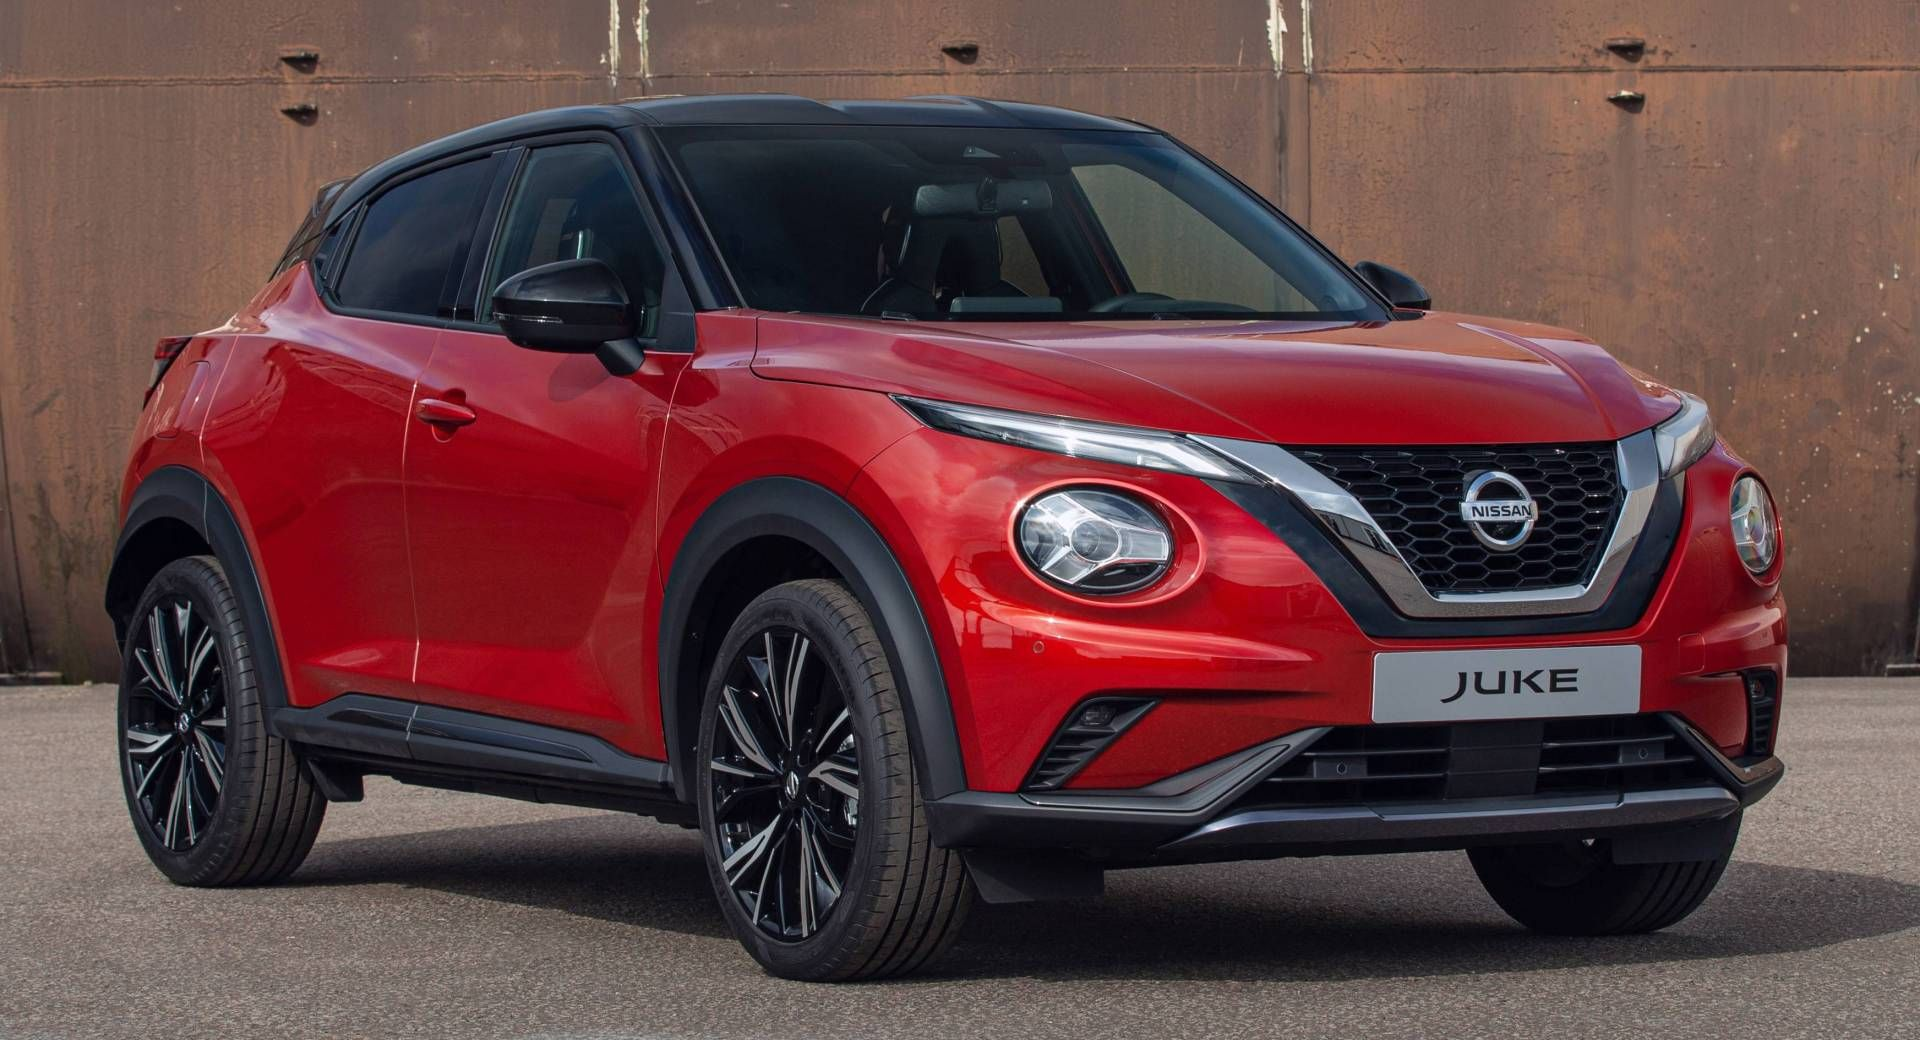 All New 2020 Nissan Juke Grows Up Without Losing Its Quirky Looks